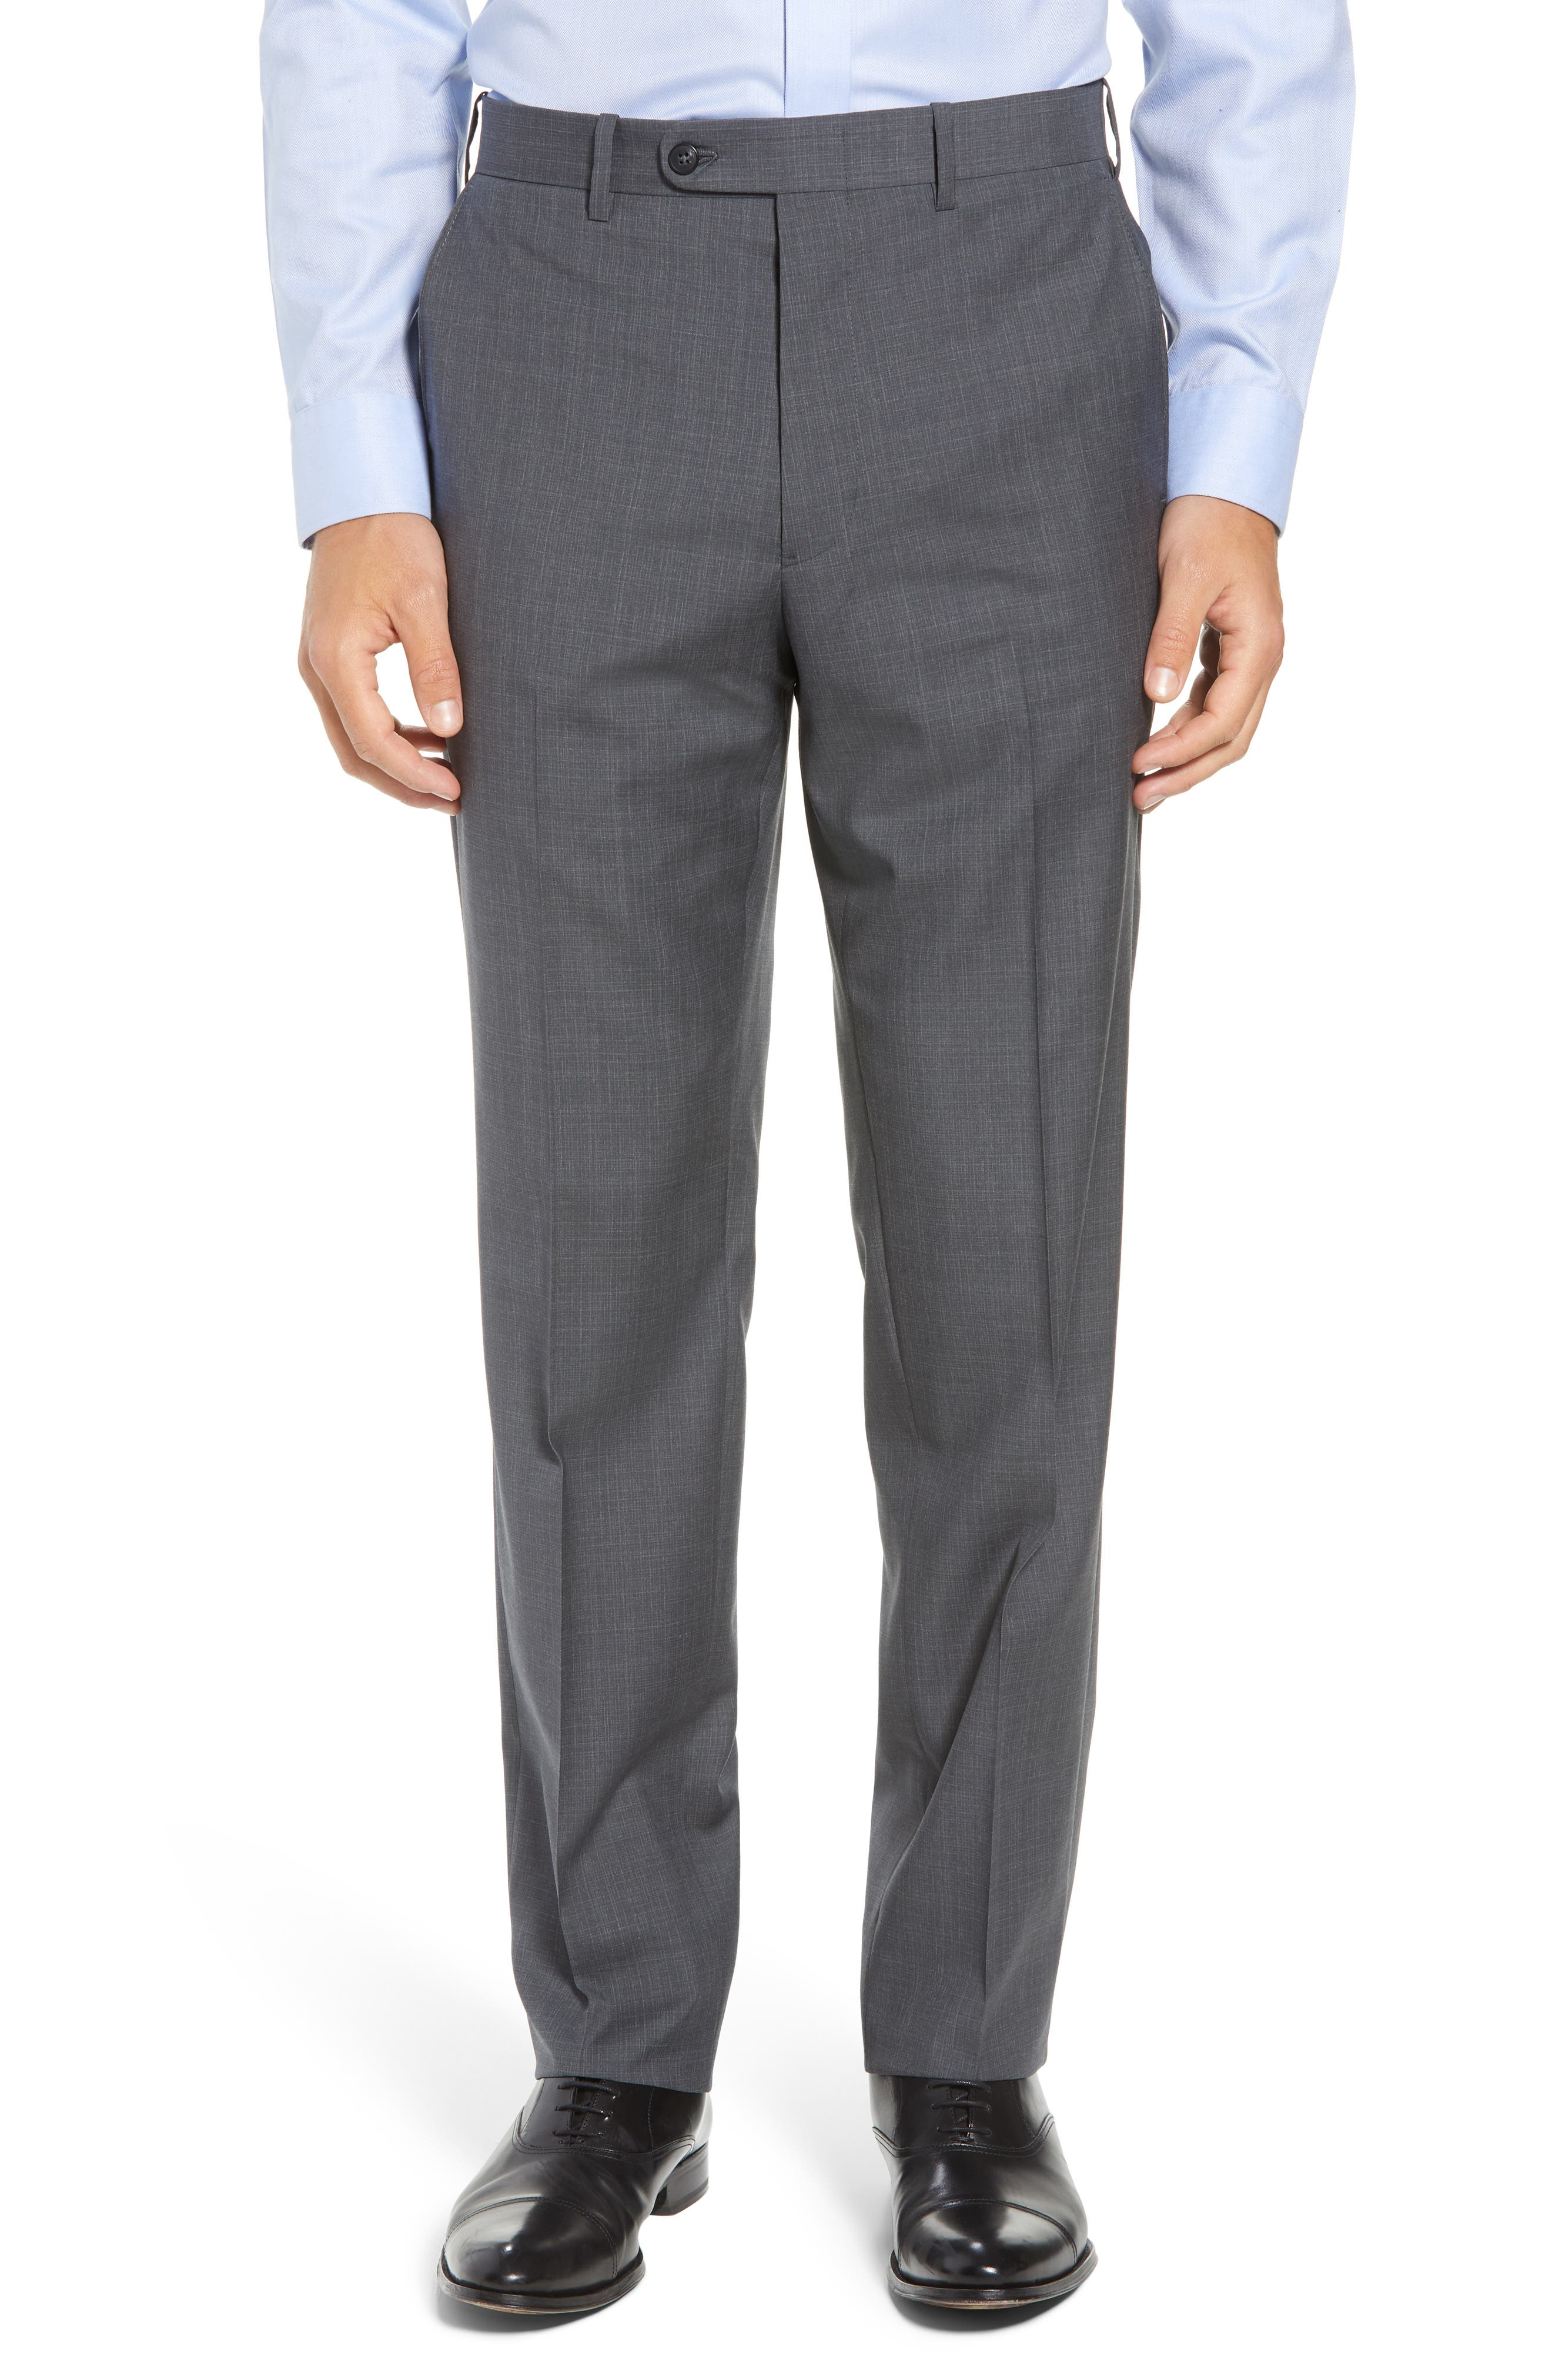 Torino Traditional Fit Flat Front Plaid Wool Trousers,                             Main thumbnail 1, color,                             GREY